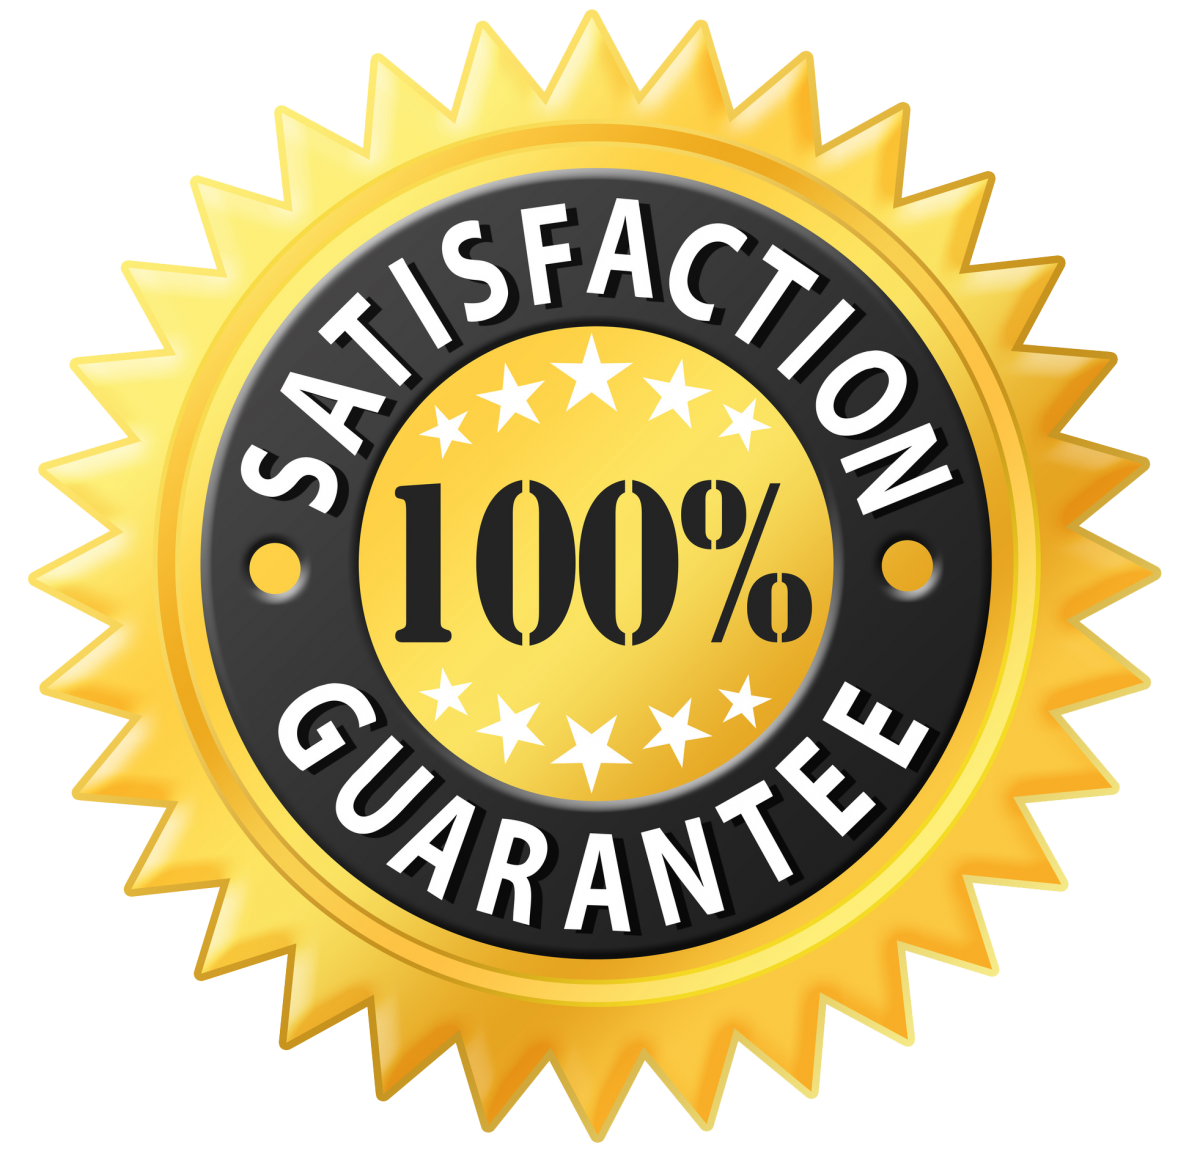 Stamp clipart warranty. Hq guarantee png transparent